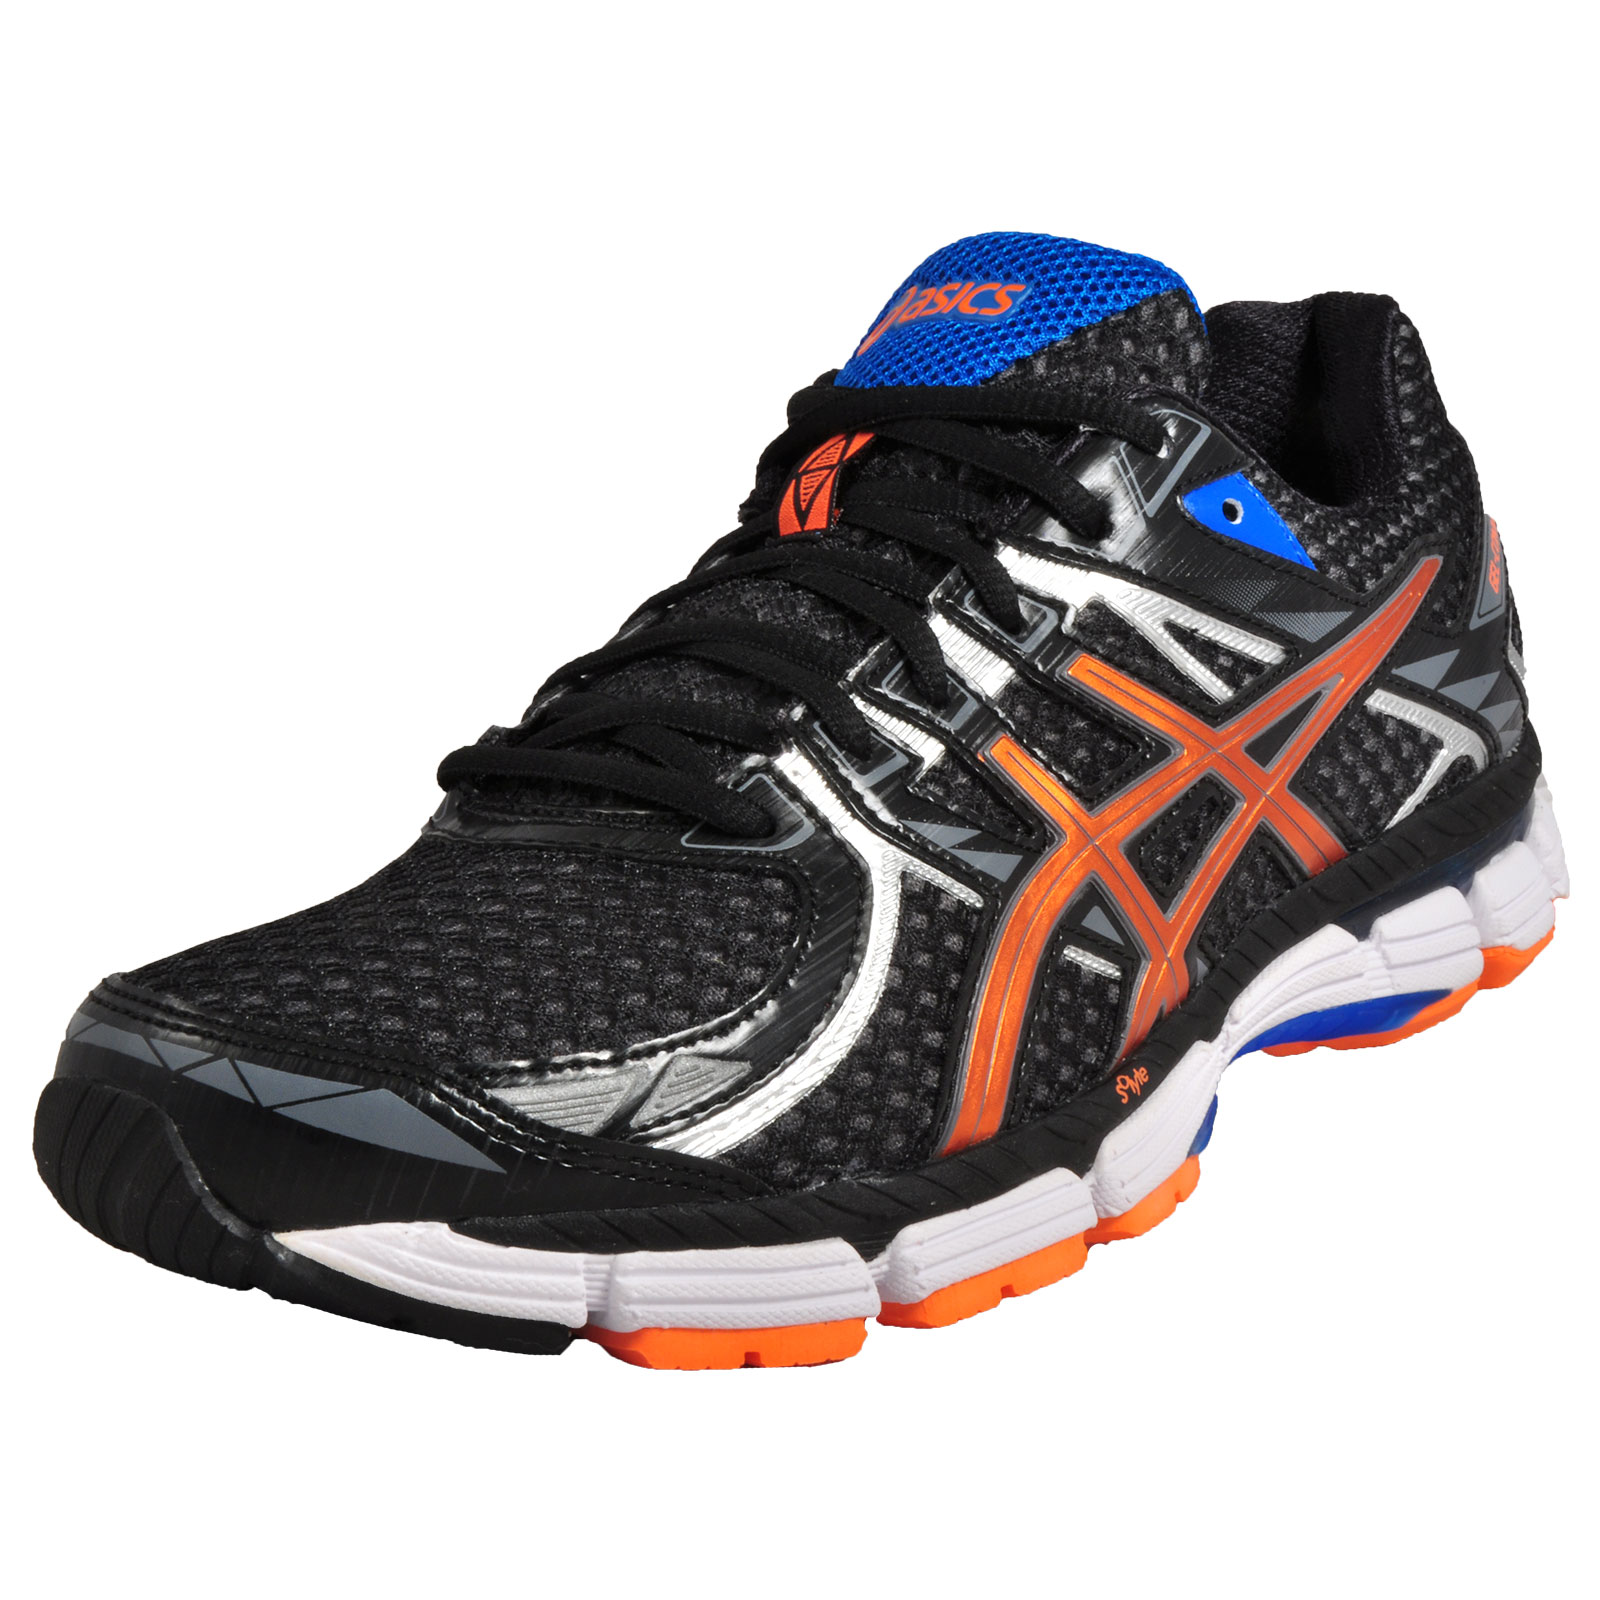 a2338874a5 Details about Asics Gel Convector 2 Mens Premium Performance Running Shoes  Gym Fitness Trainer